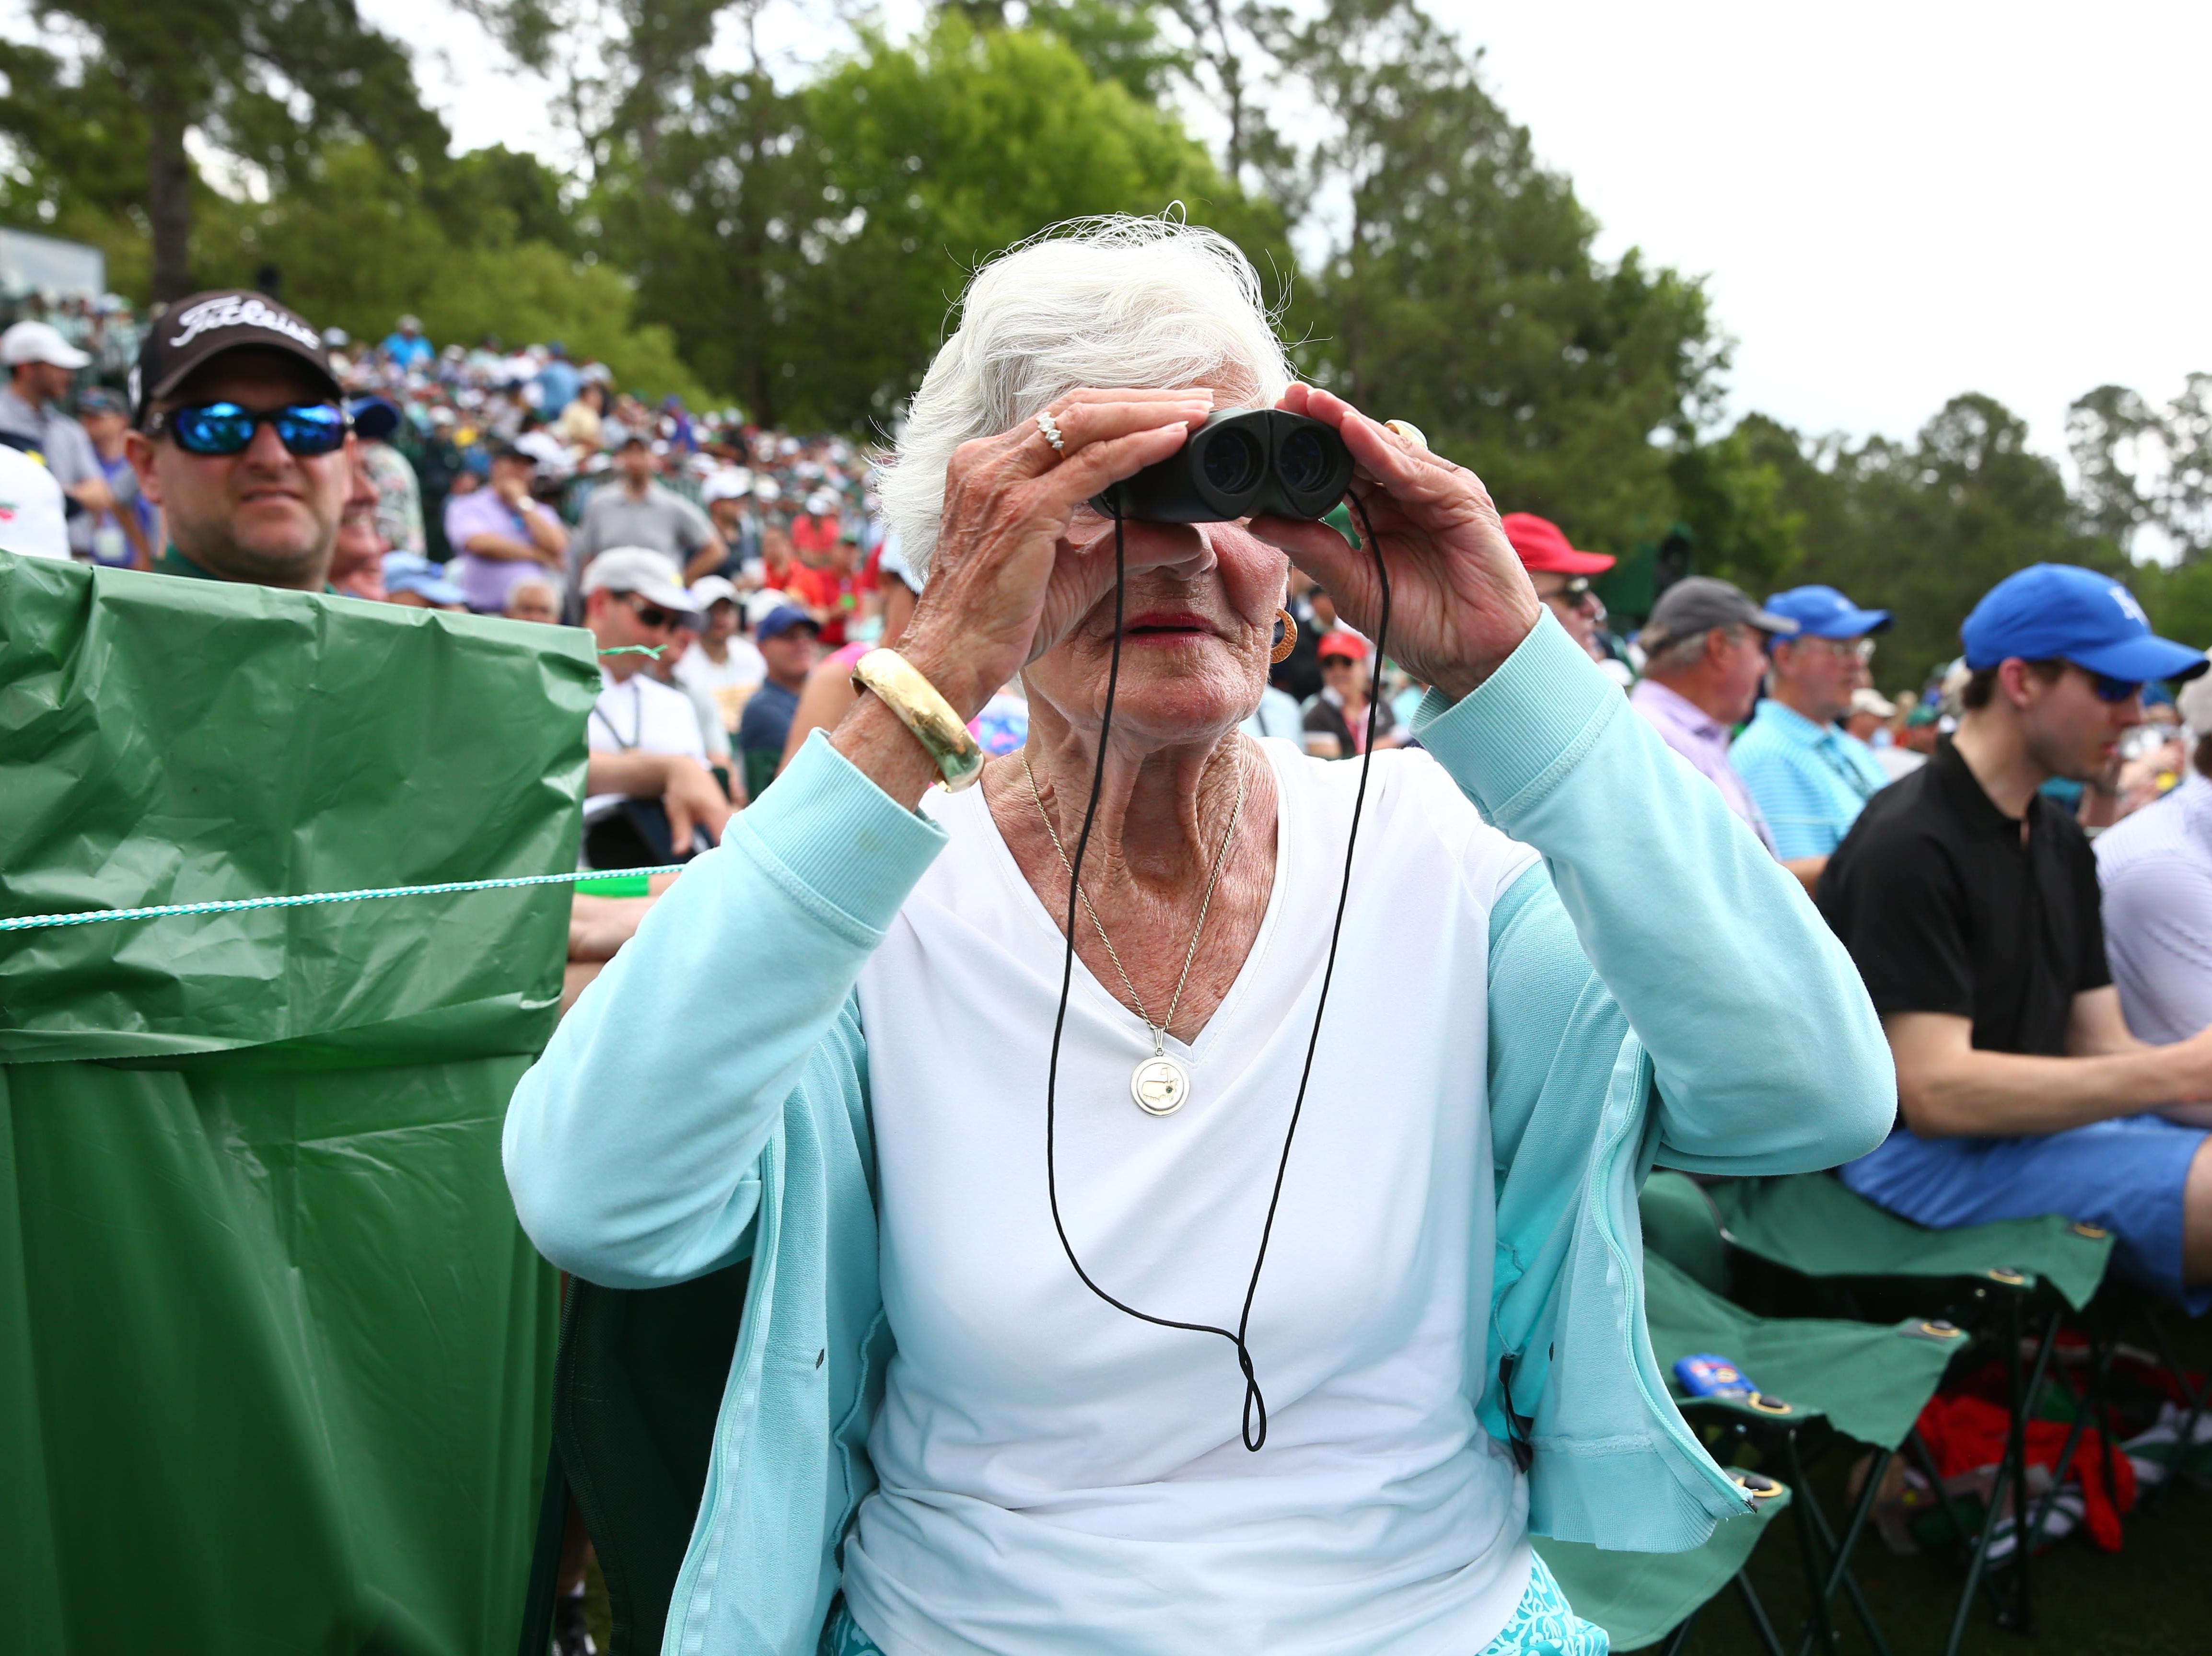 Apr 12, 2019; Augusta, GA, USA; Masters patron Joan Chittenden watches the action from along the 12th hole during the second round of The Masters golf tournament at Augusta National Golf Club. Mandatory Credit: Rob Schumacher-USA TODAY Sports